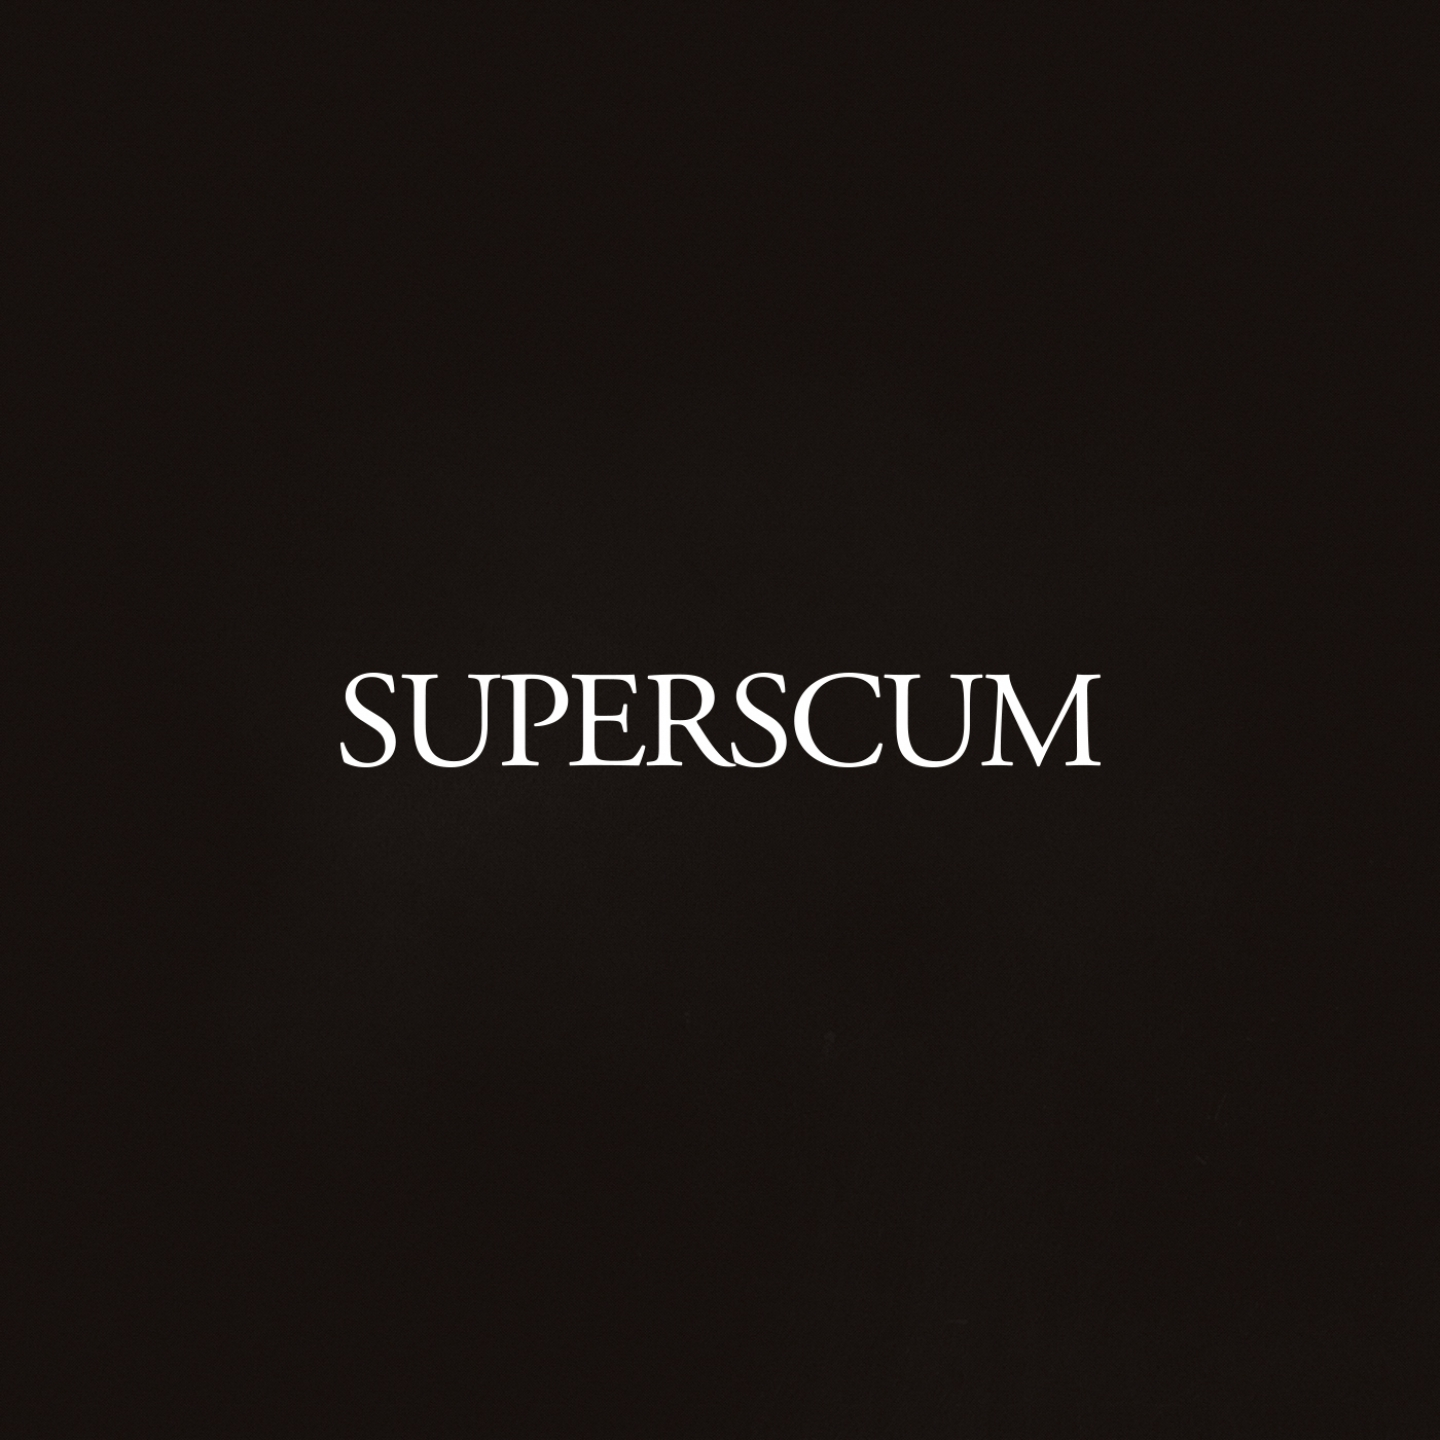 Superscum – 'Superscum' (Album)